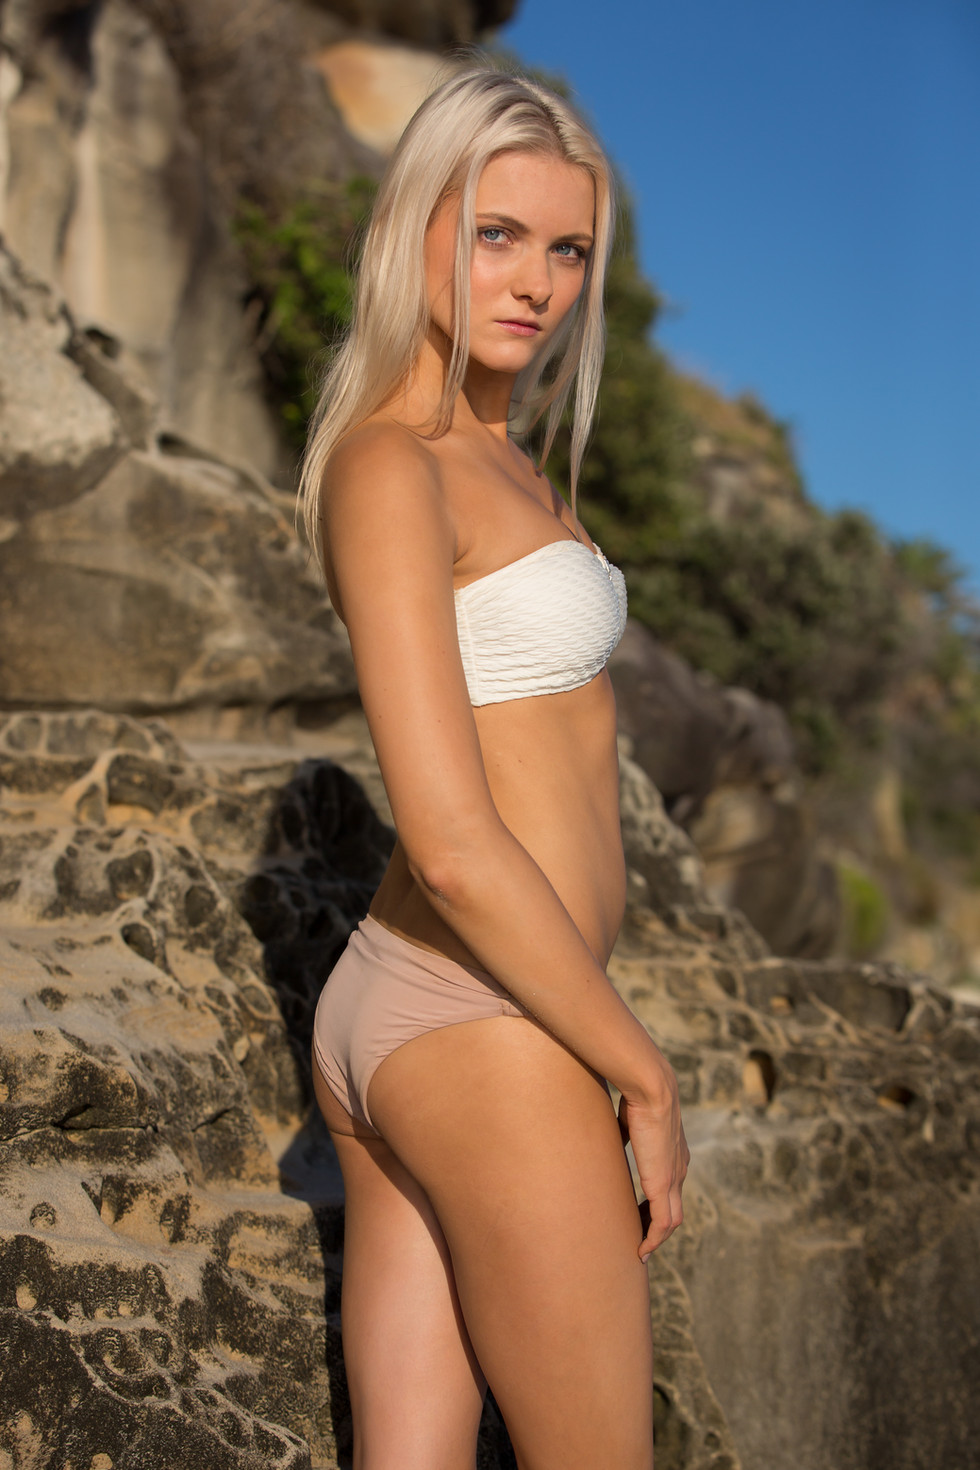 Kriste__by_CoogeePhotography-323114.jpg